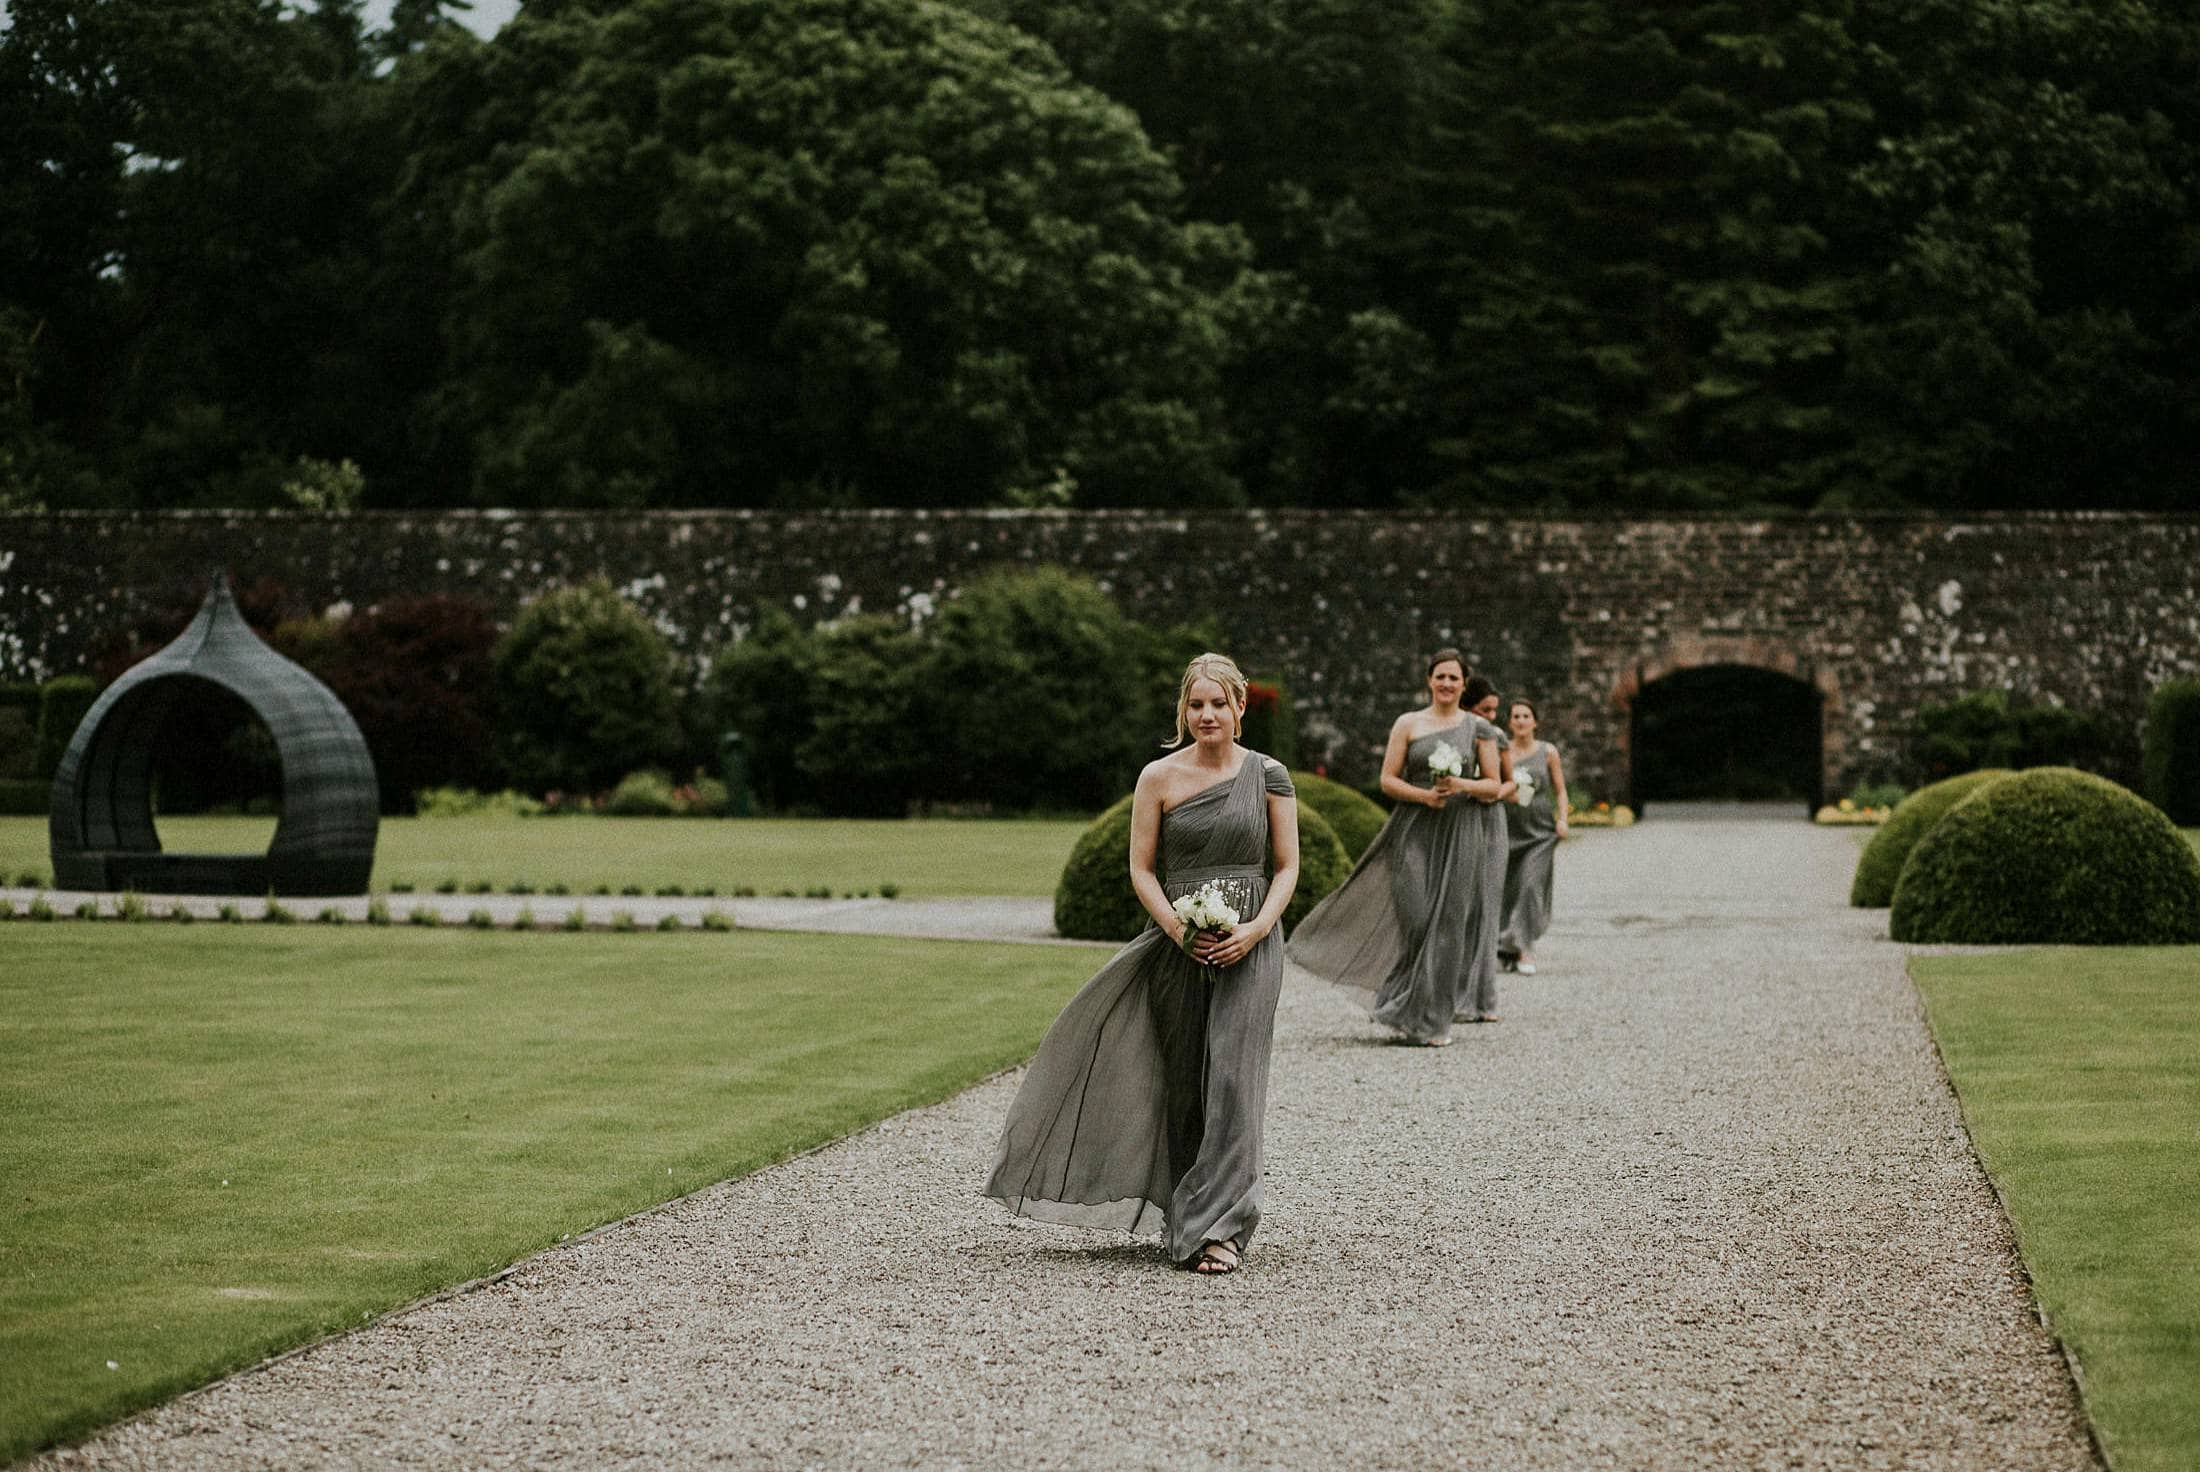 Rossdhu House wedding at Loch Lomond Golf Club - John ...